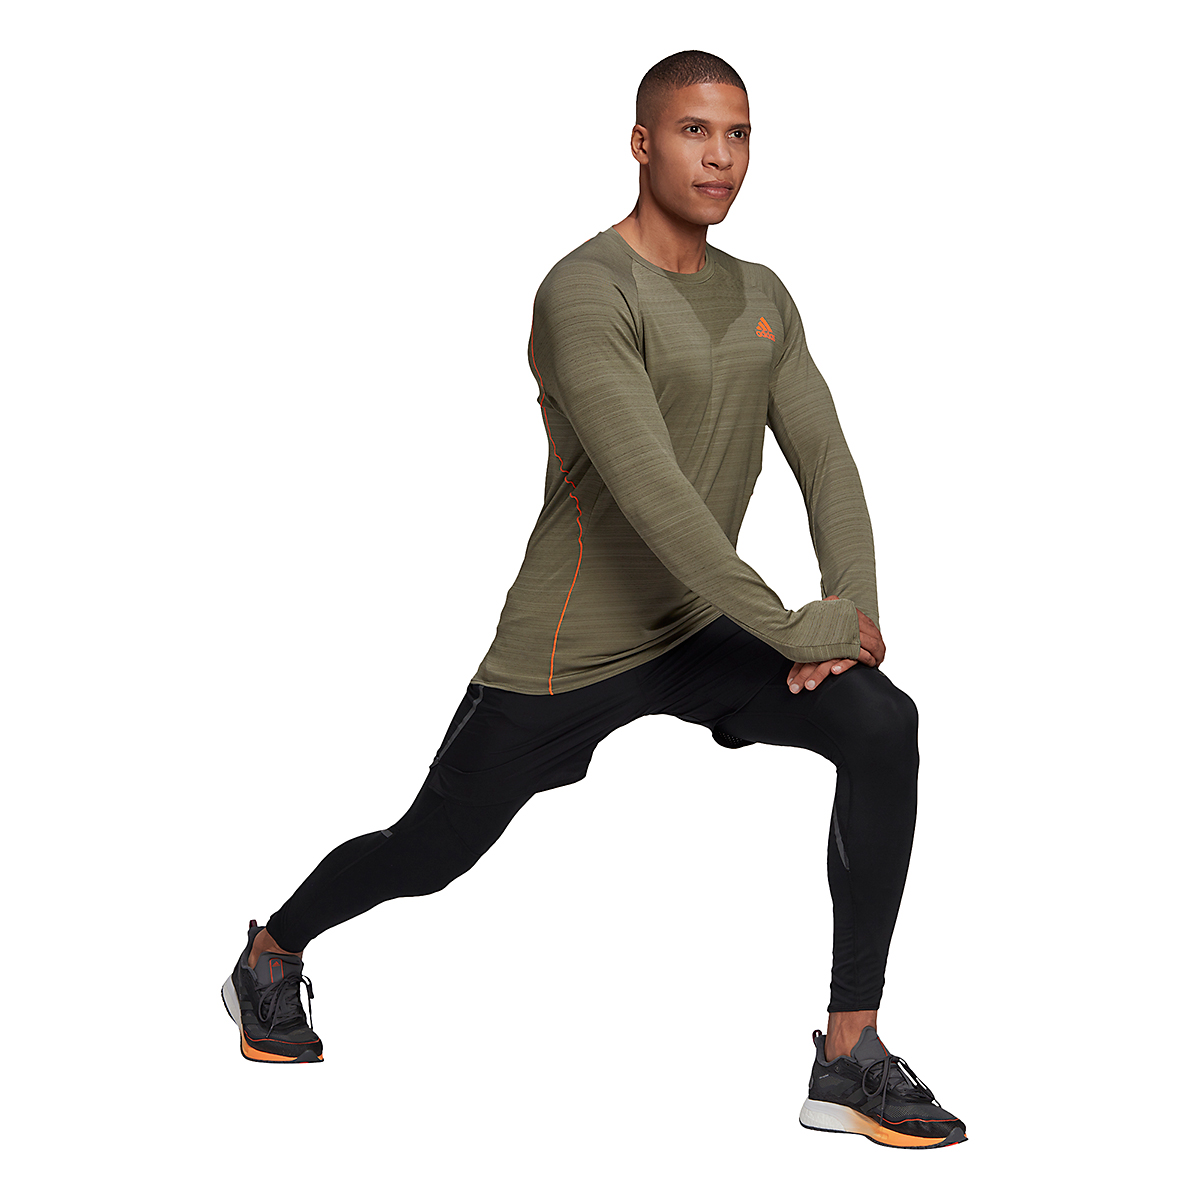 Men's Adidas Runner Long Sleeve Tee - Color: Legacy Green - Size: S, Legacy Green, large, image 4